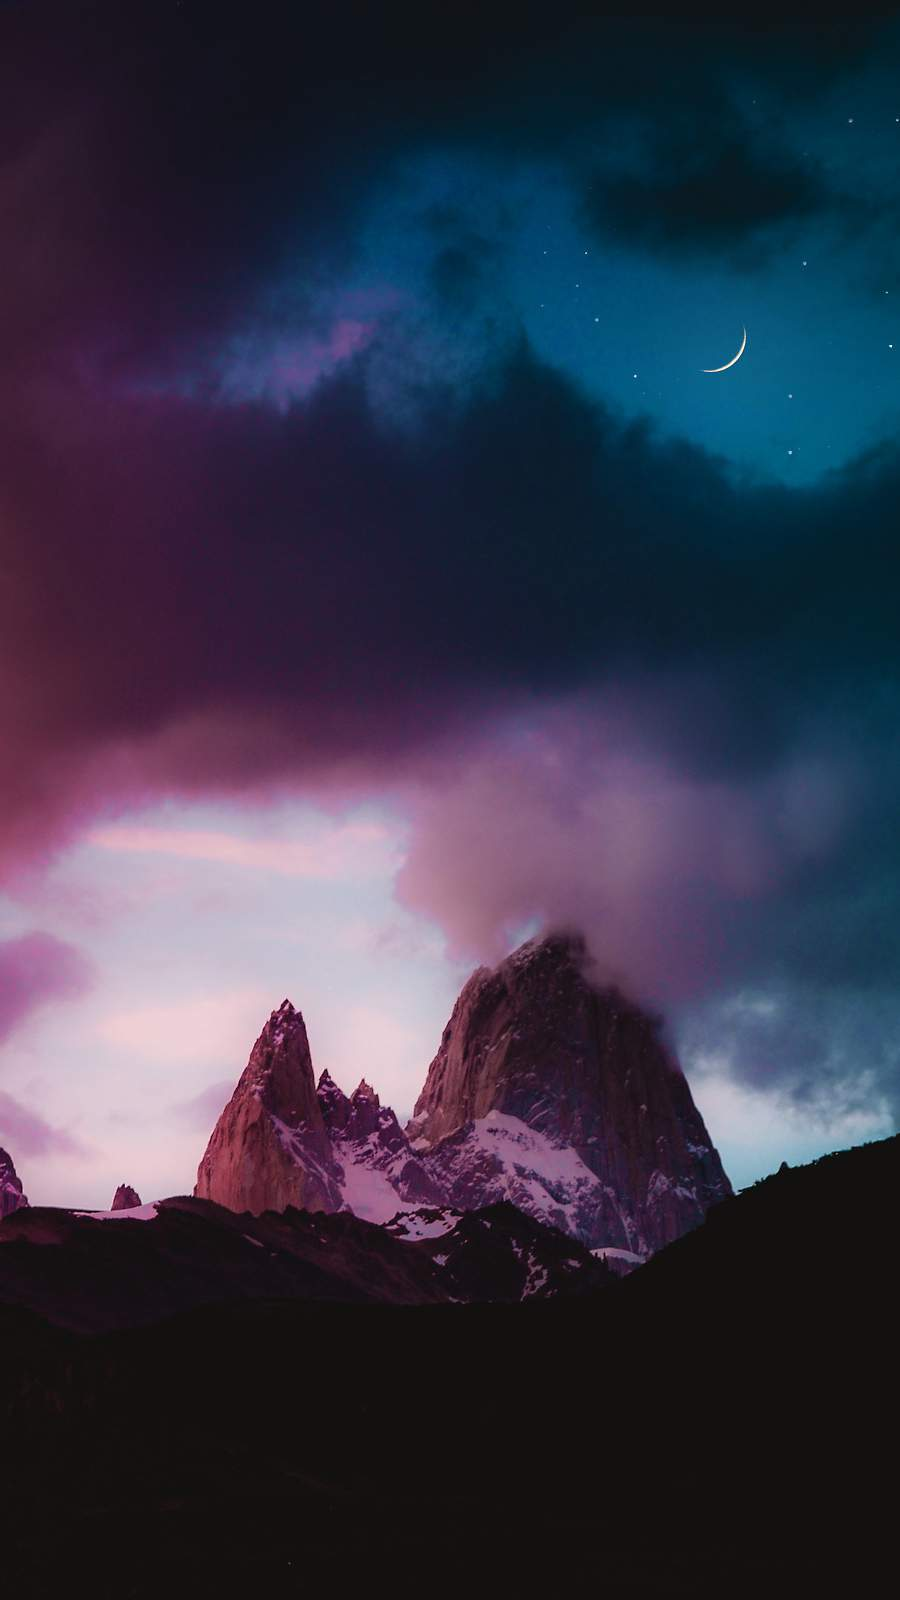 Moon Cloudy Sky and Mountains iPhone Wallpaper